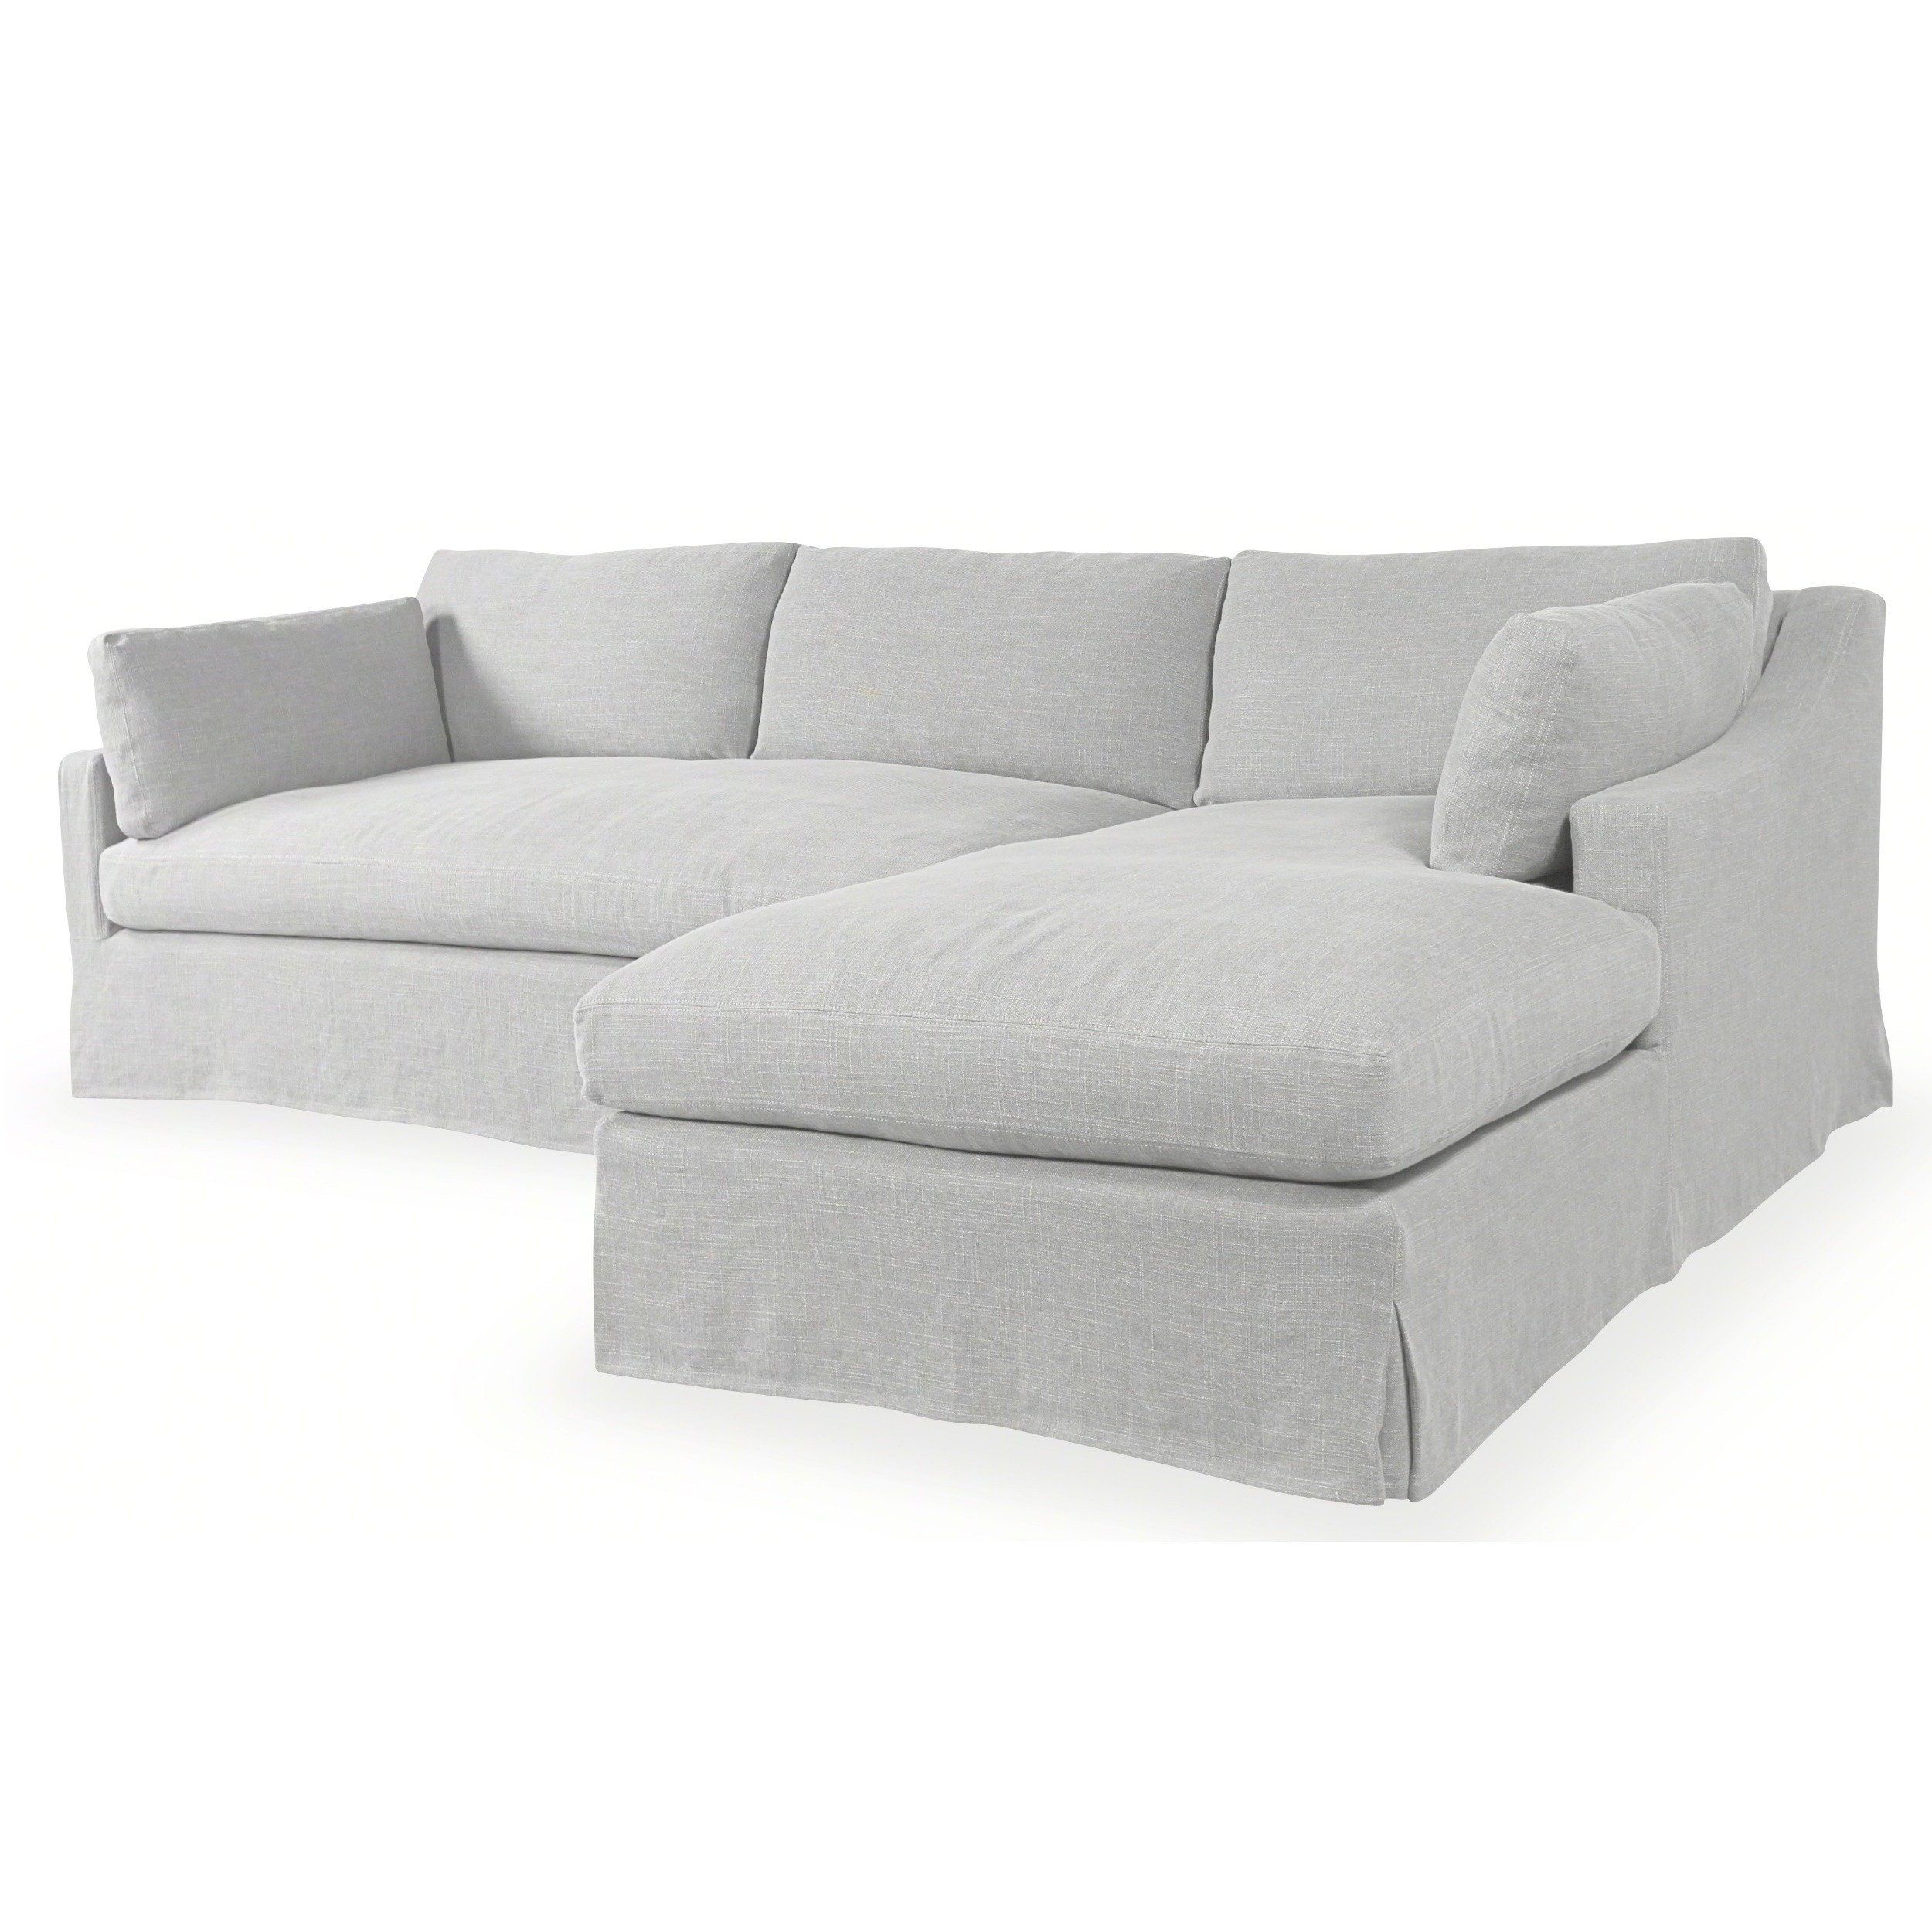 Astounding Dune Slip Covered Sectional Kw8709 Linen Living Room Onthecornerstone Fun Painted Chair Ideas Images Onthecornerstoneorg